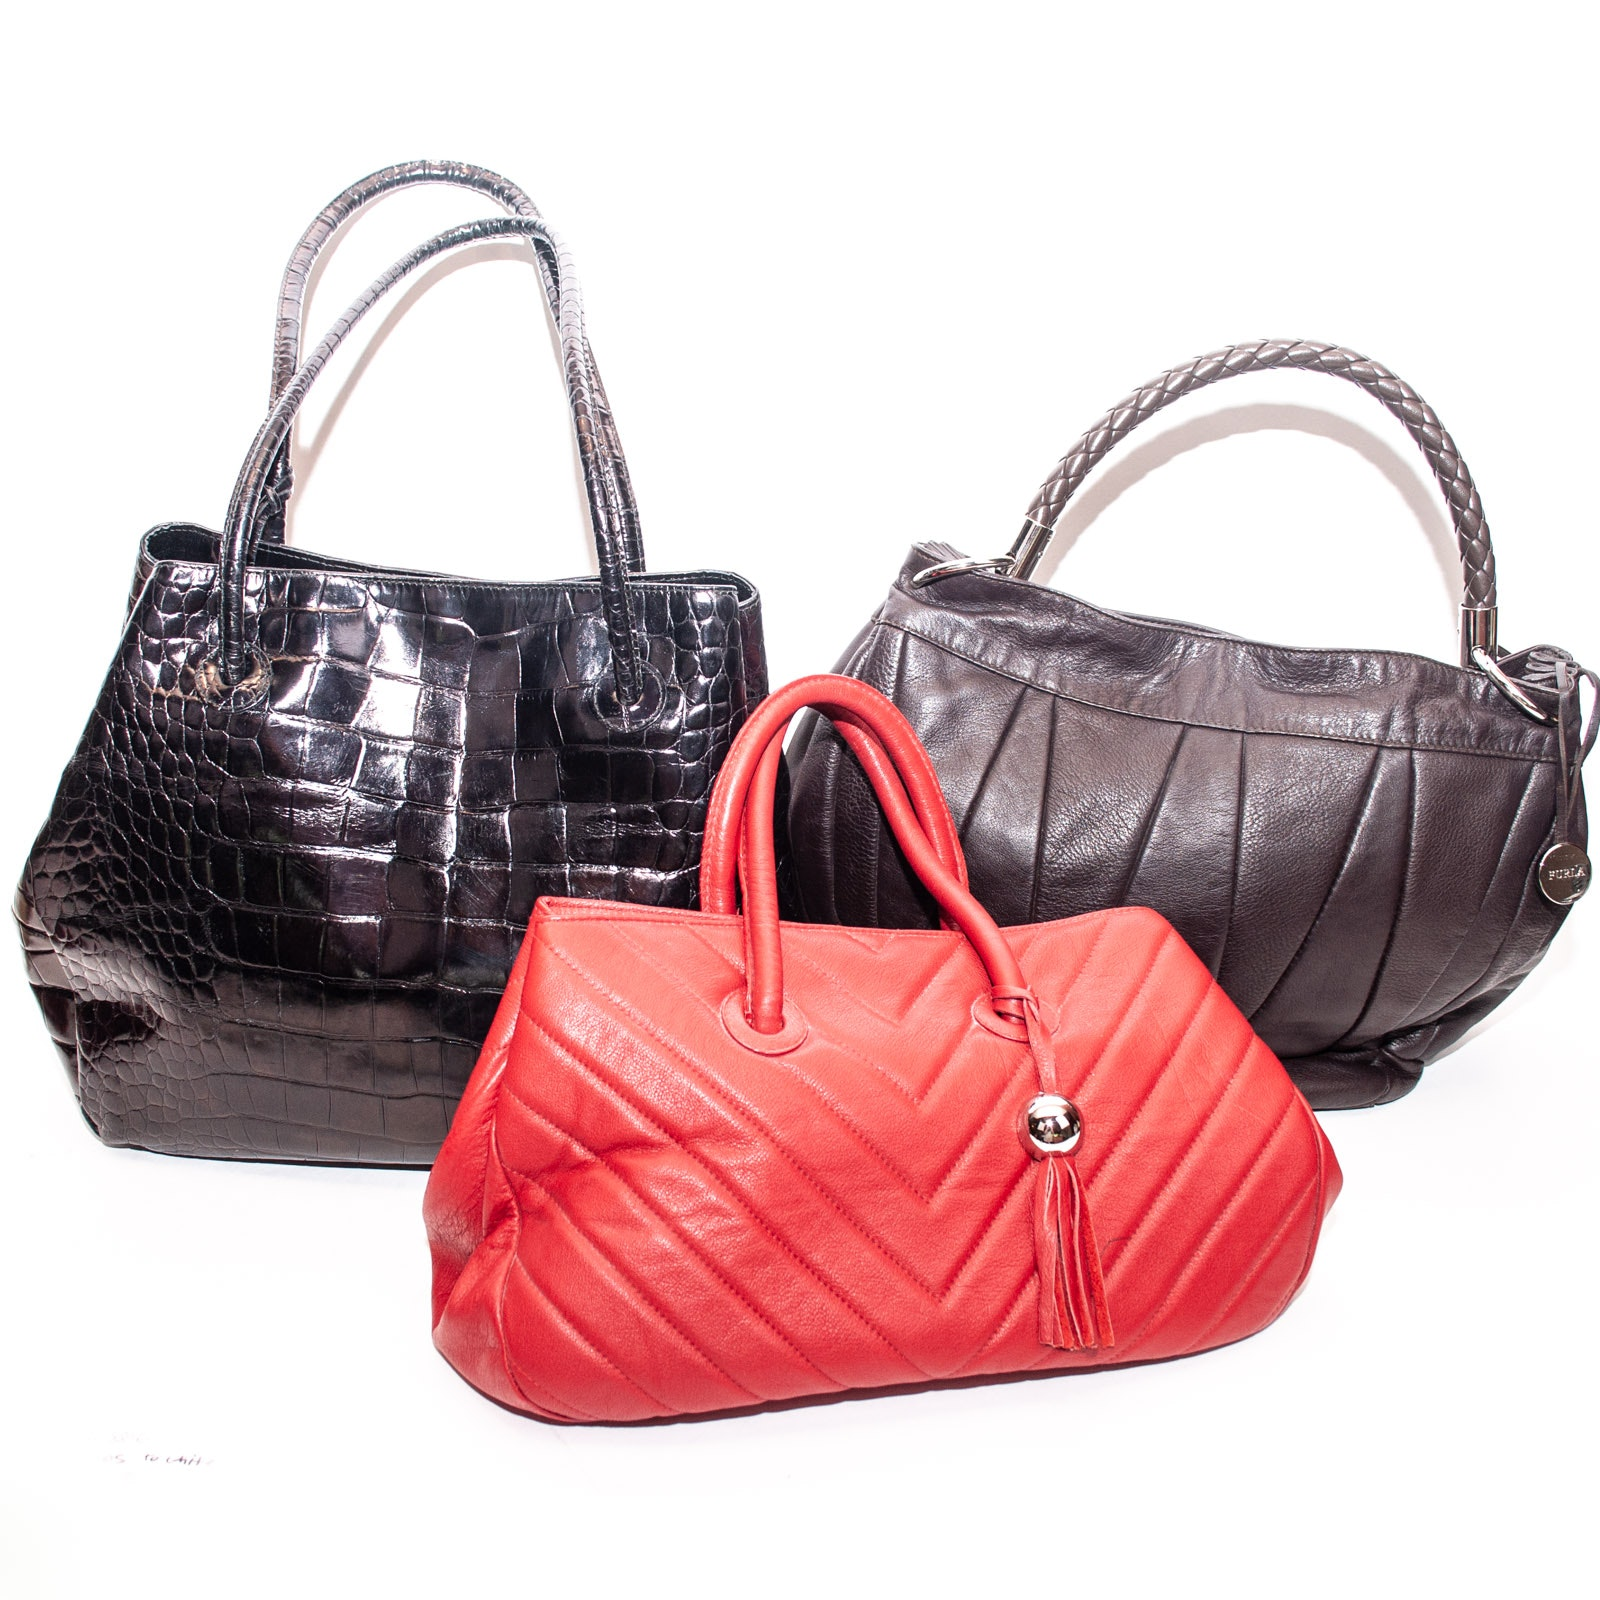 Italian Leather Handbags by Furla